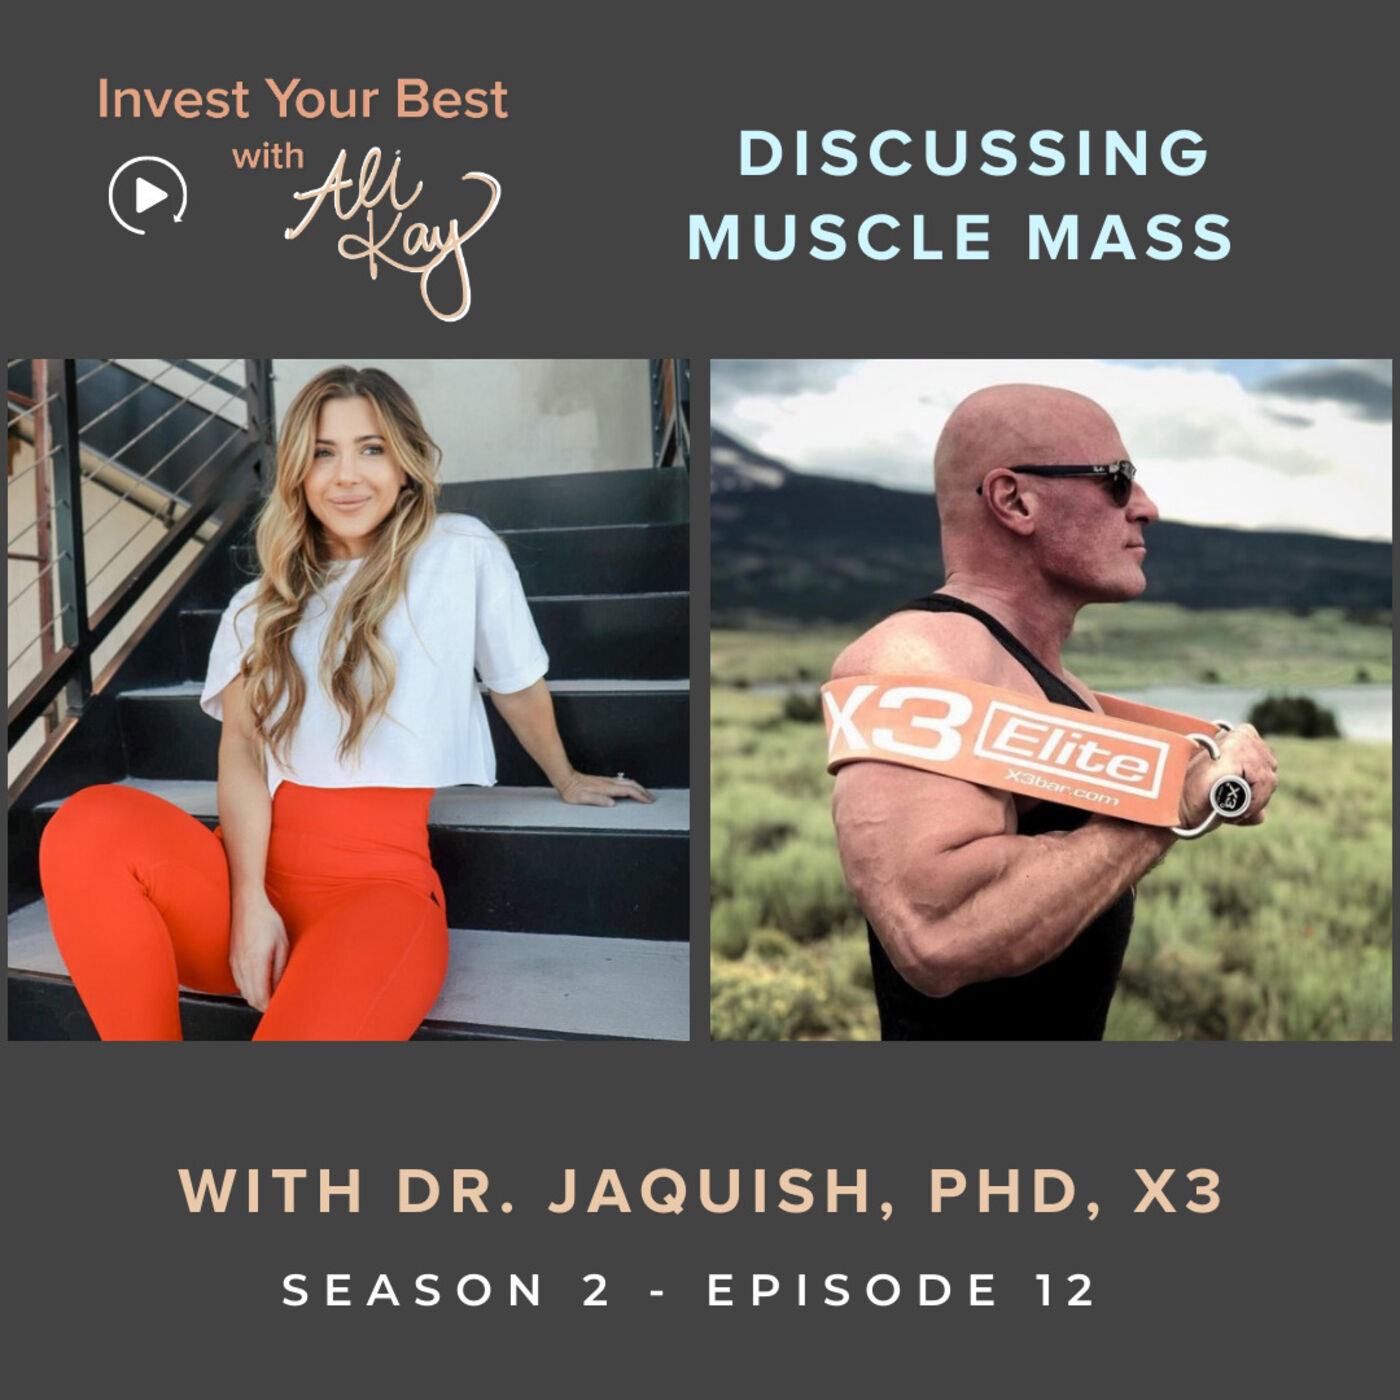 Discussing Muscle Mass with Dr. Jaquish